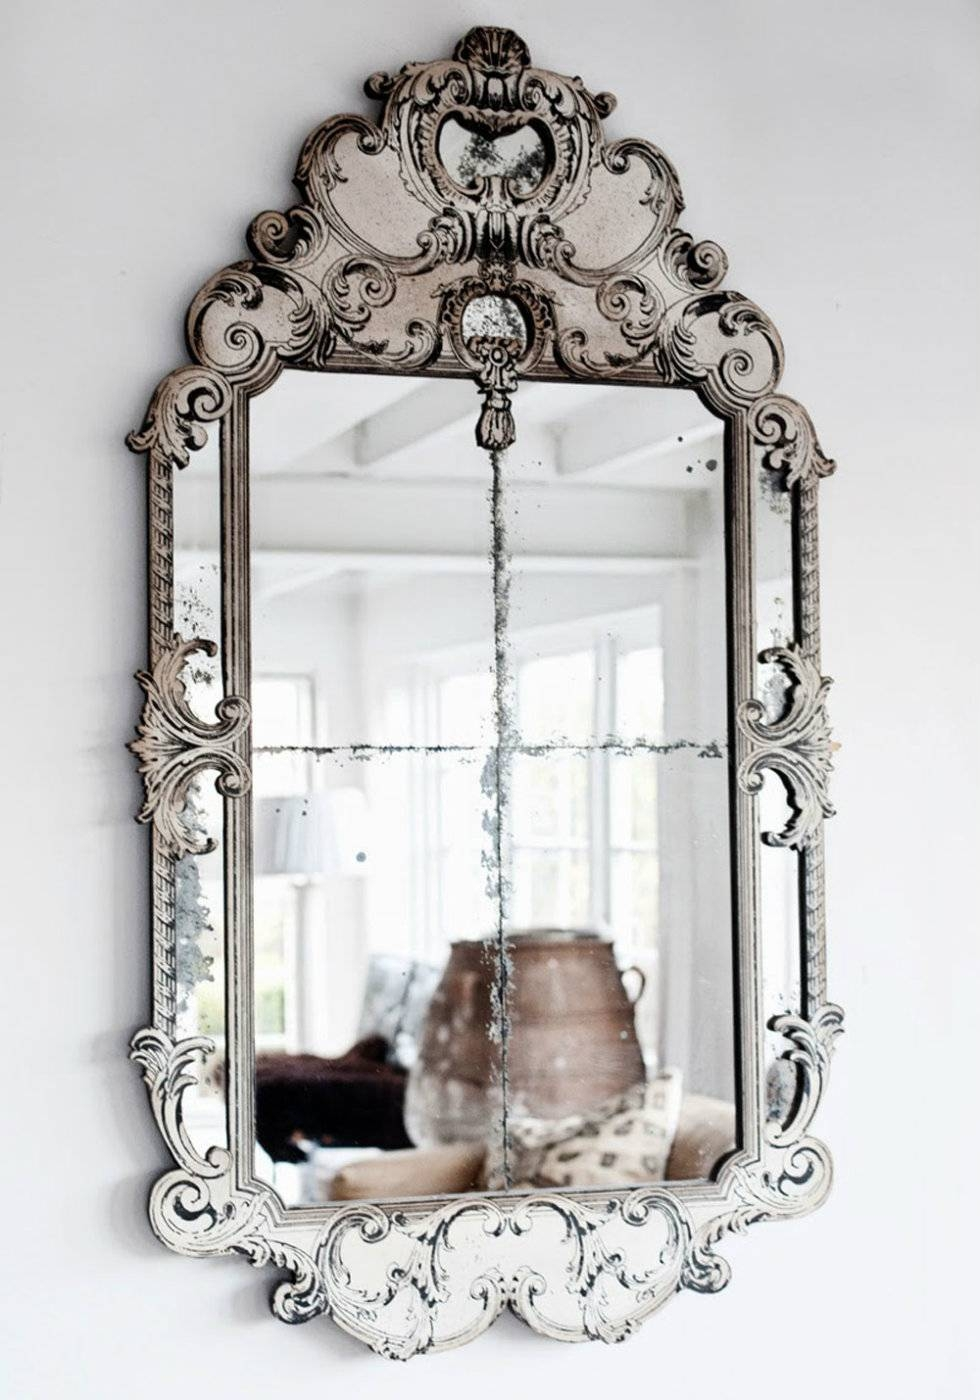 2015 Milan Design Week Trend To See: Luxurious Venetian Mirrors intended for Cheap Venetian Mirrors (Image 1 of 15)